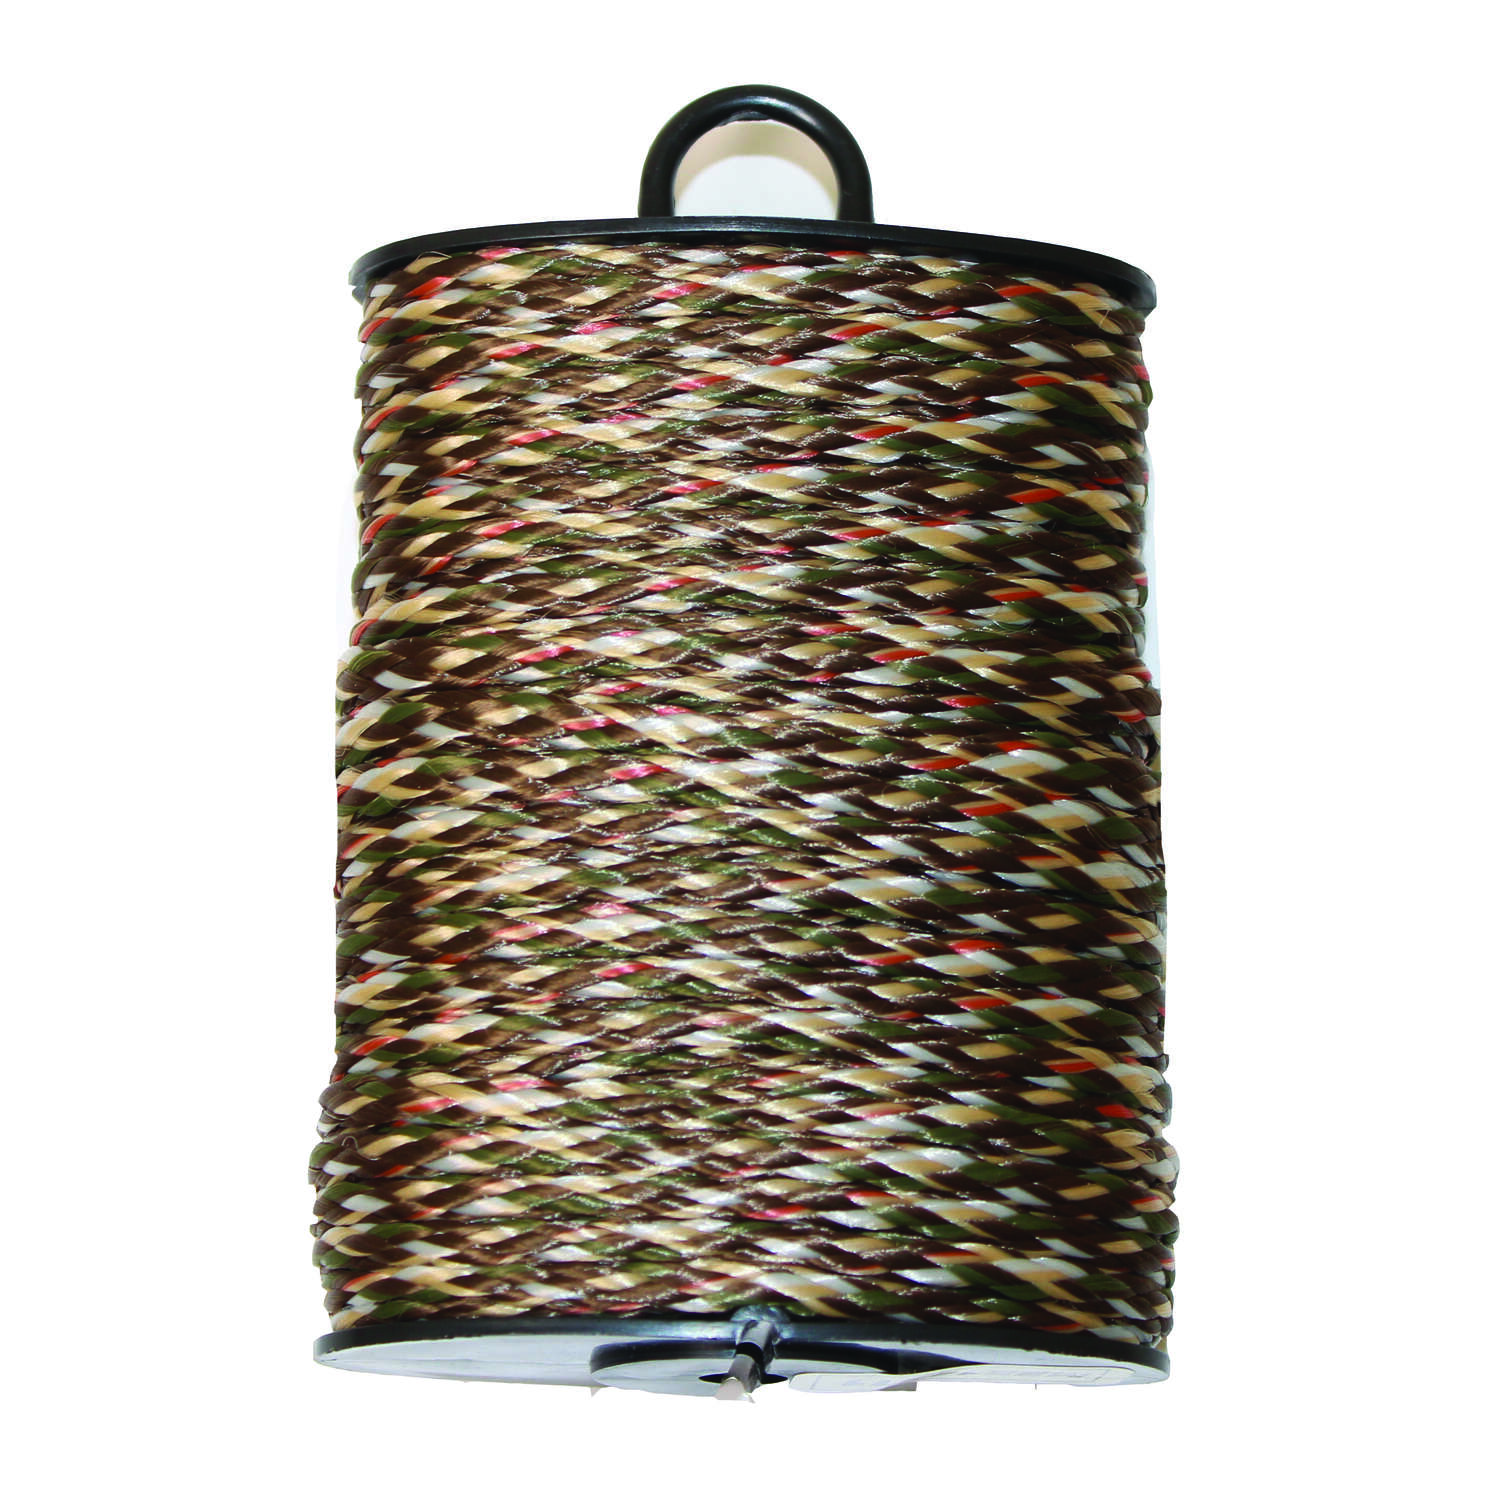 SecureLine  50 ft. L x 5/32 in. Dia. Braided  Poly  Rope  Camouflage